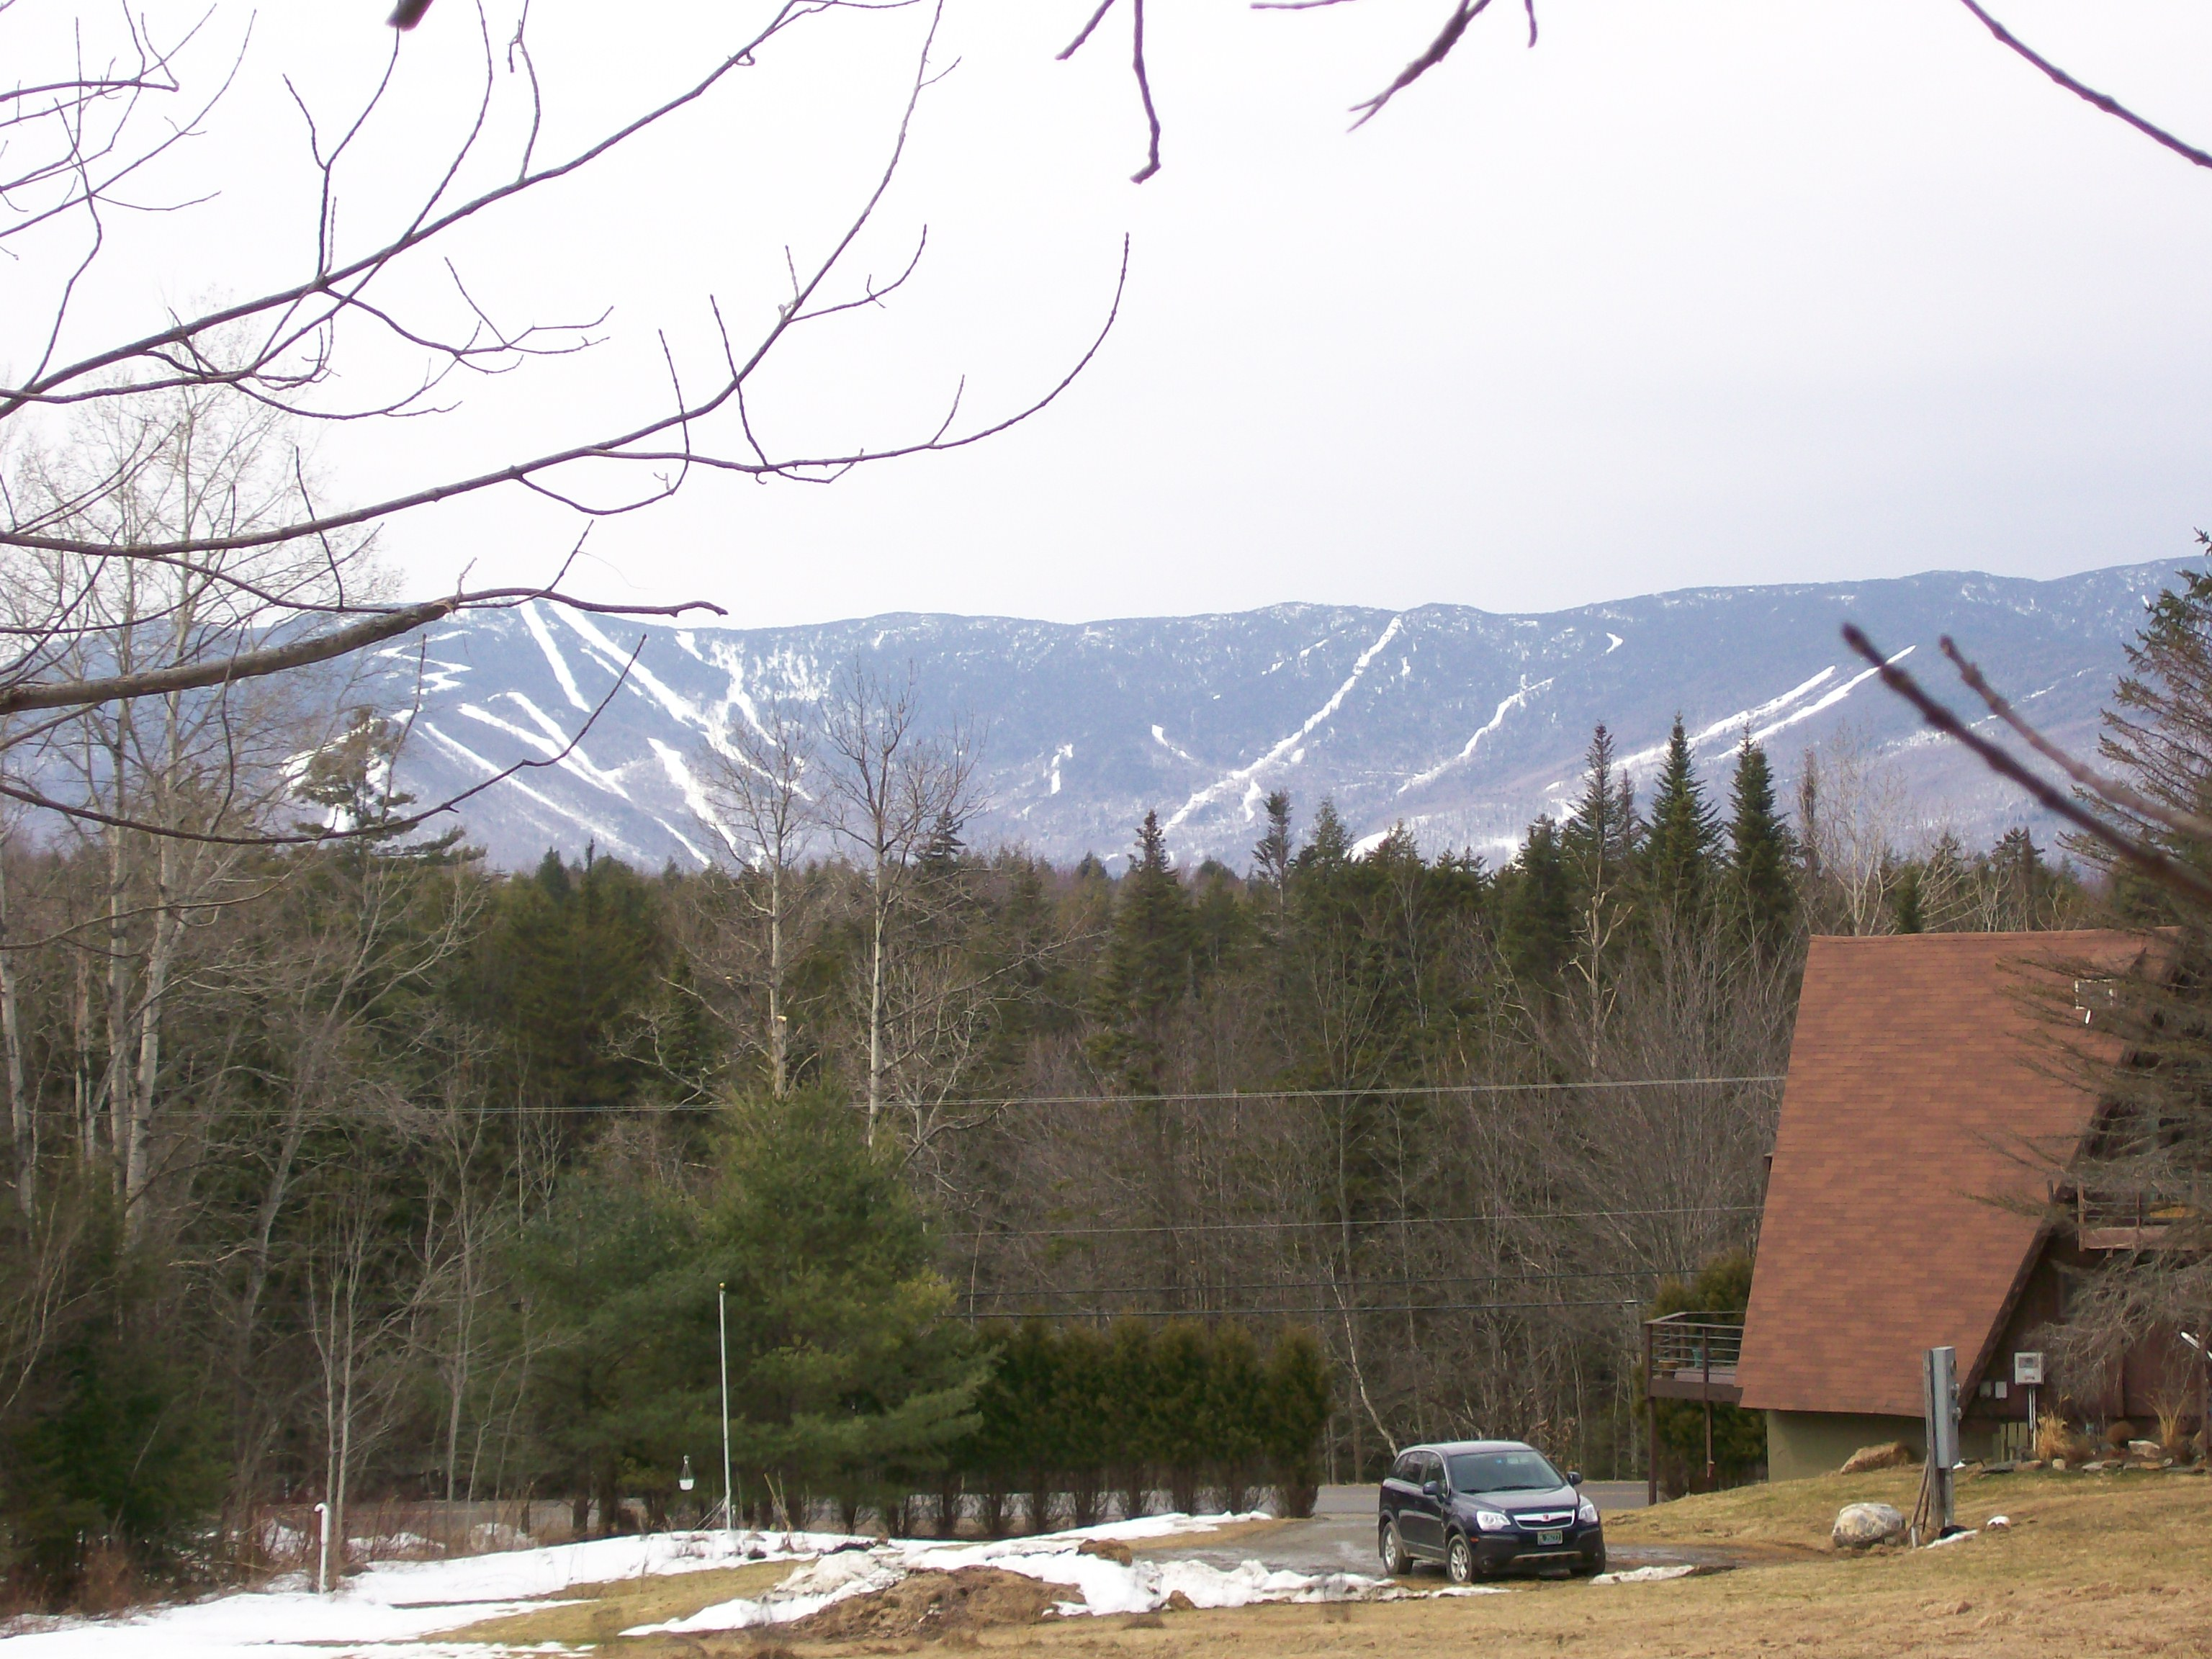 Sugarbush Resort from across the Mad River Valley.